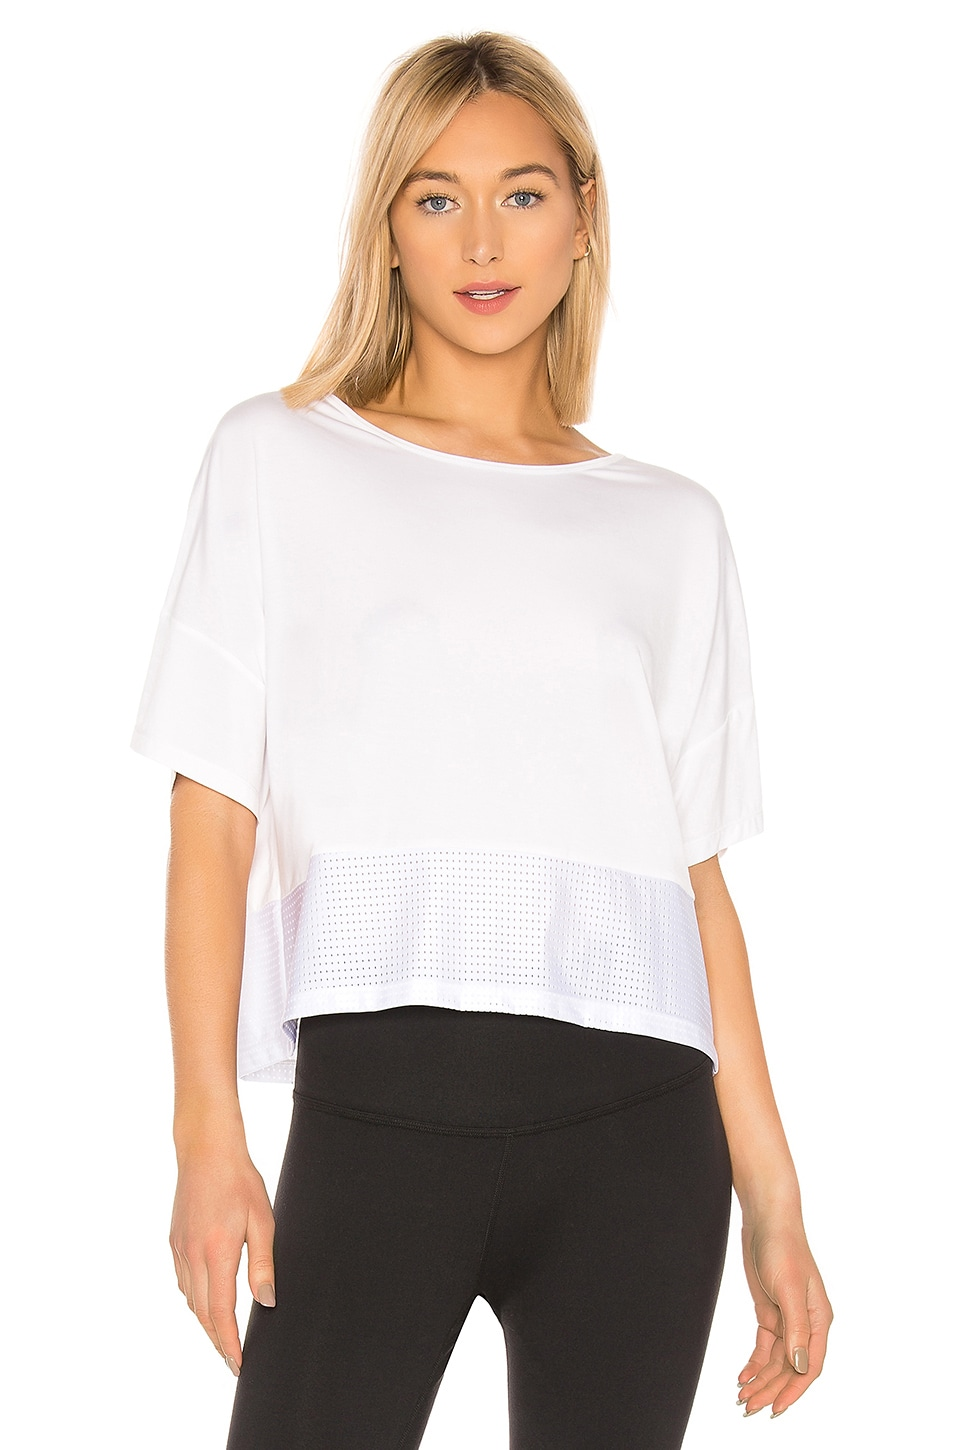 Chill by Will Donna Top in White & Mesh